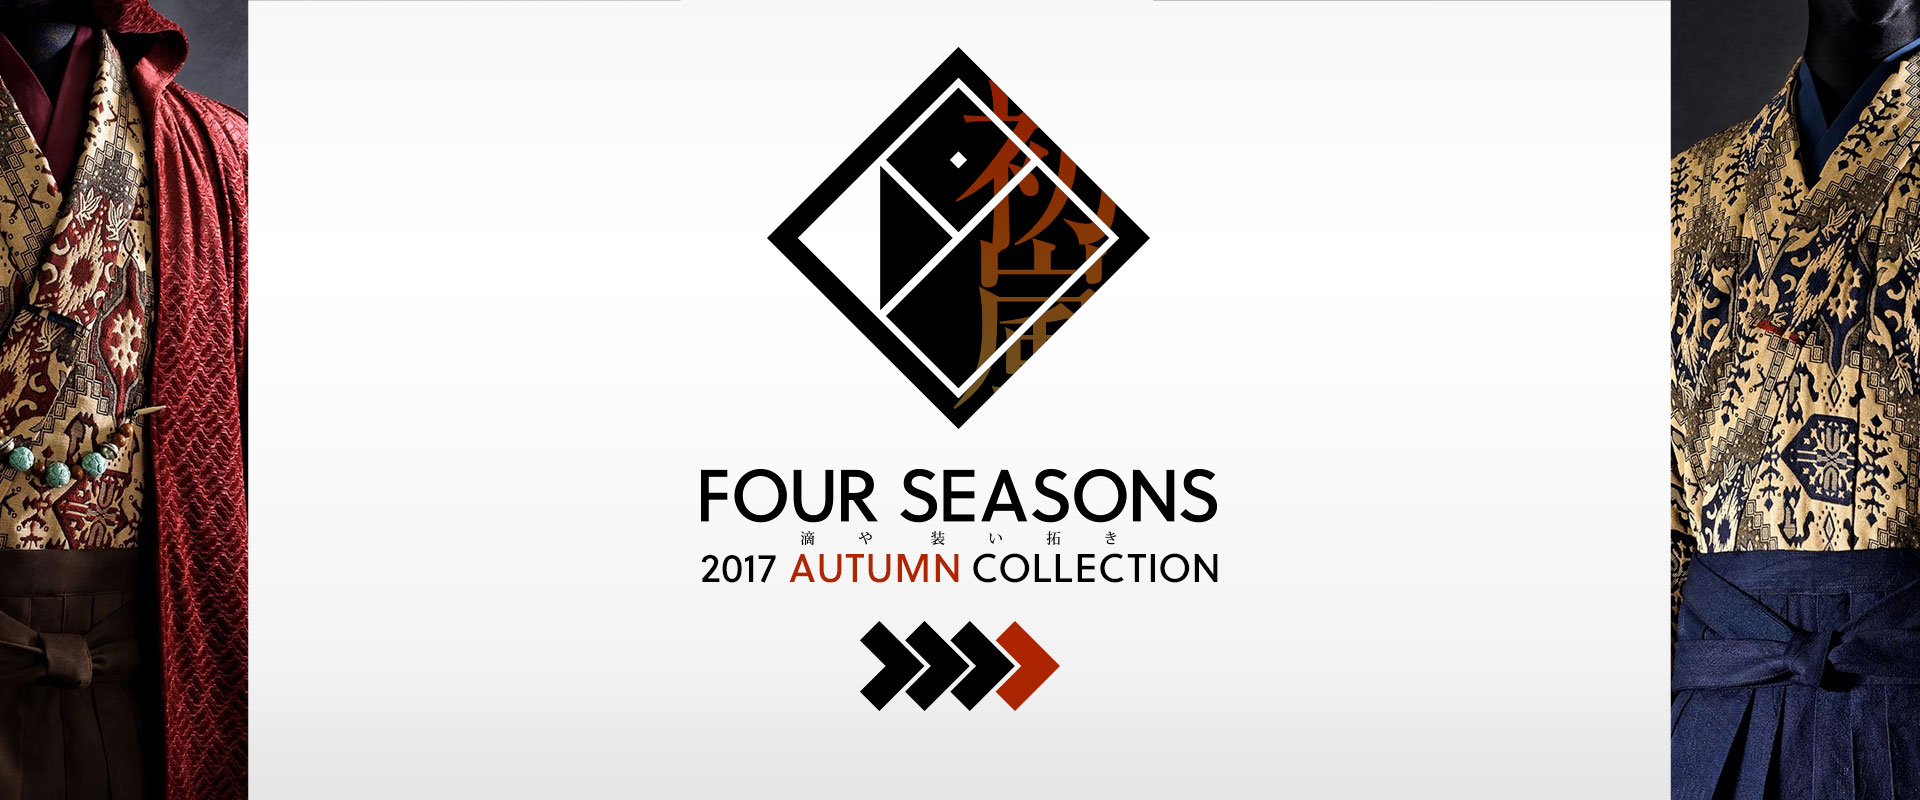 FOUR SEASONS 2017 AUTUMN COLLECTION